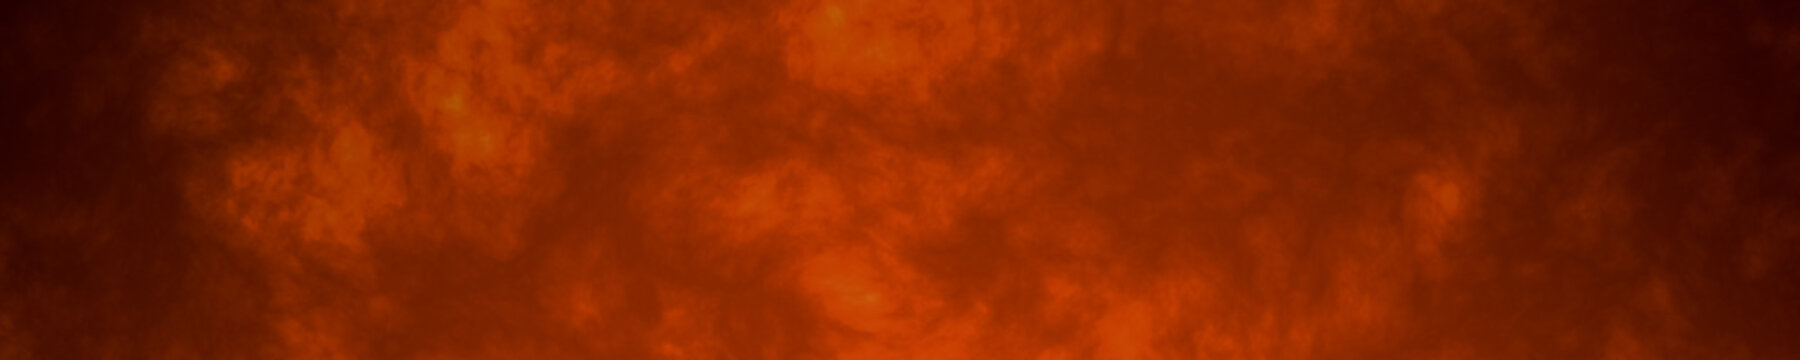 Abstract epic fire horizontal background with flame wave